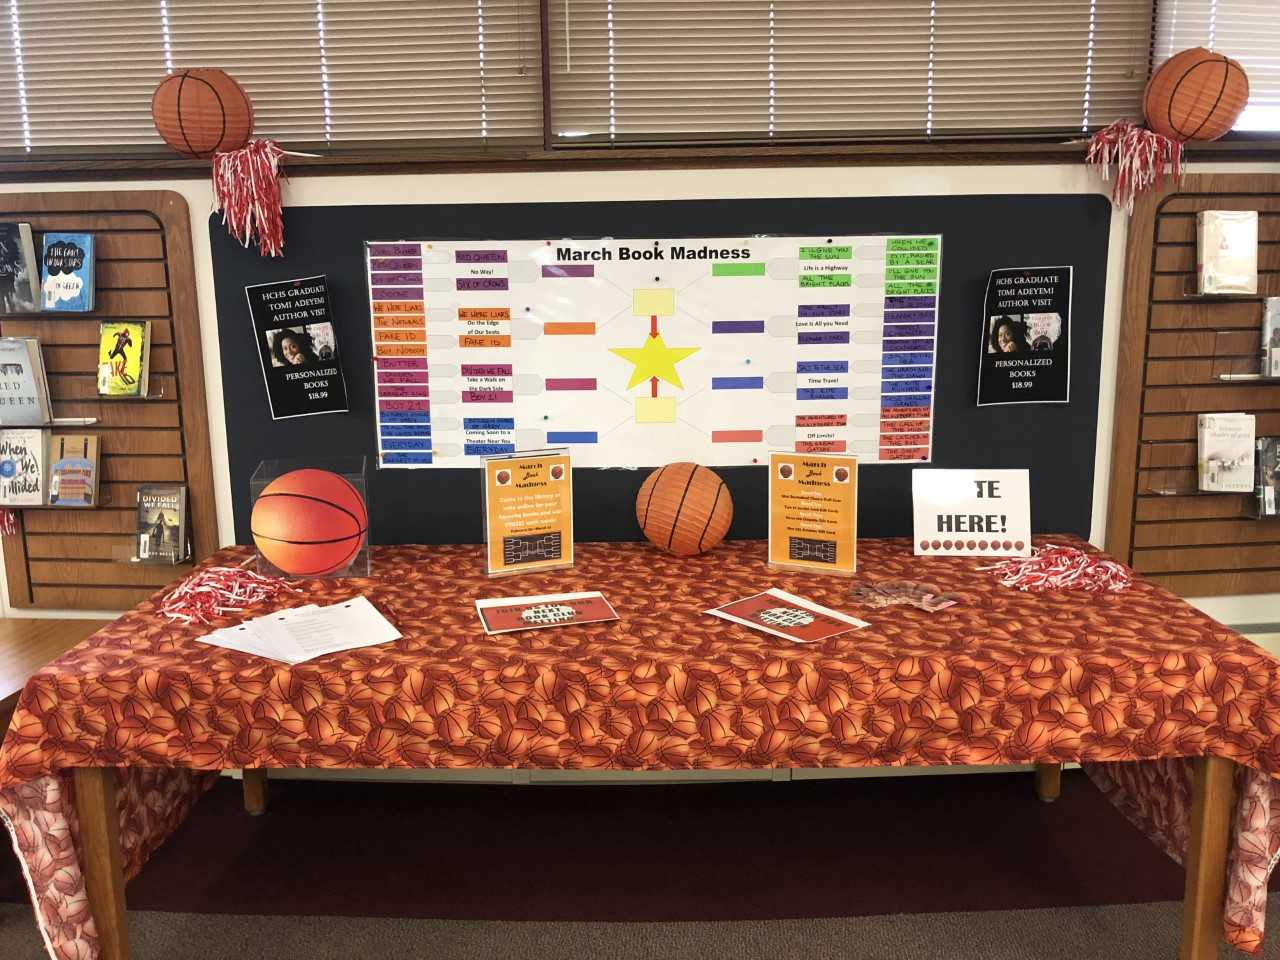 The library is full of basketball decorations in celebration of March Madness, not to be confused with the college athletic tournament.